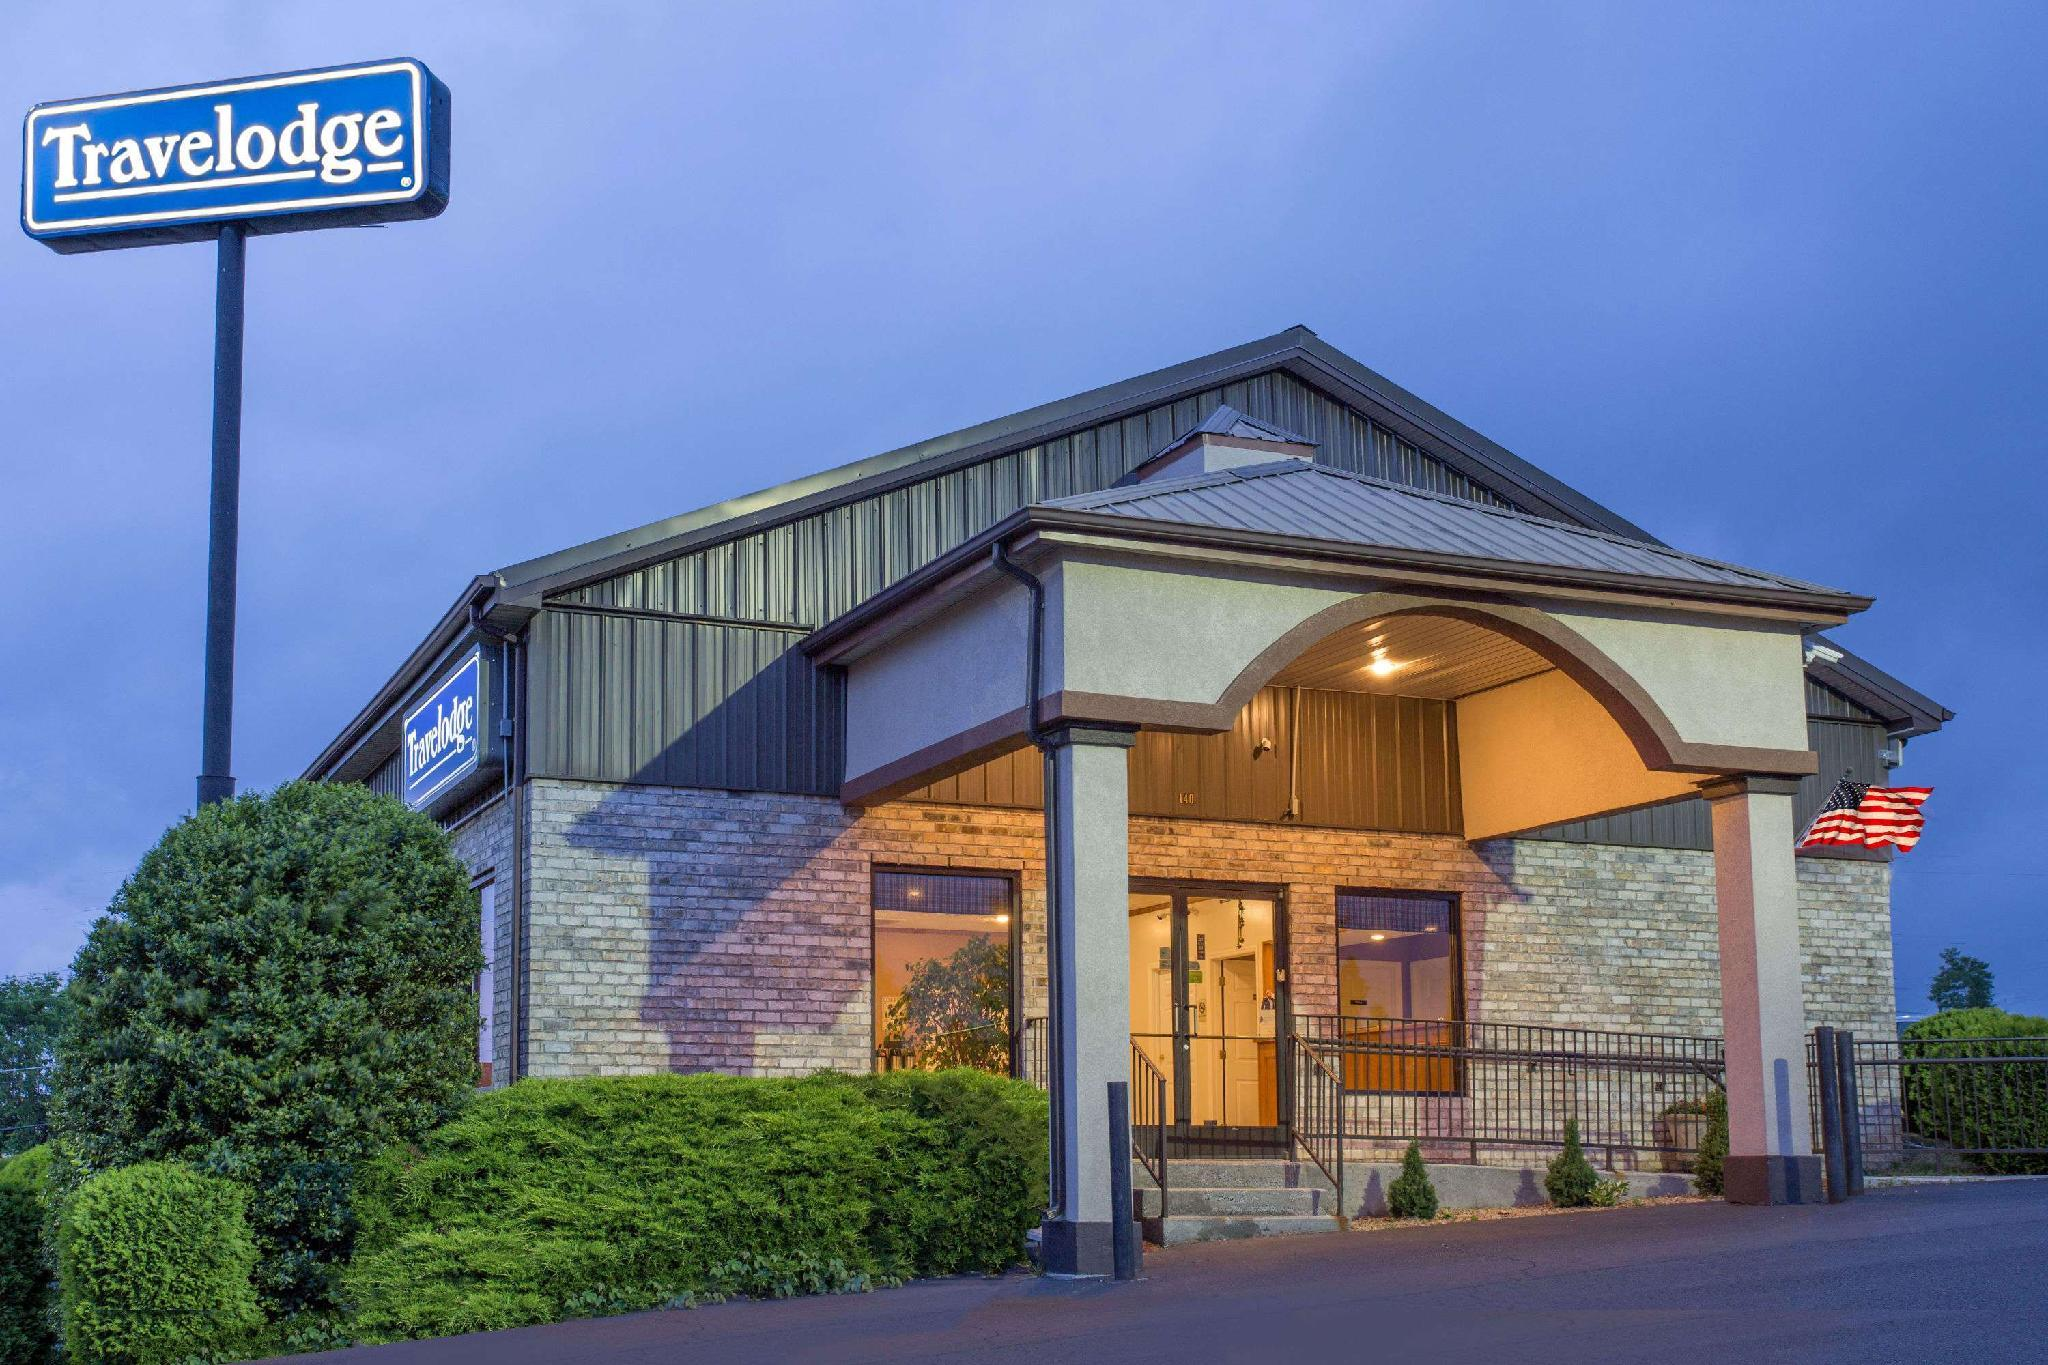 Travelodge By Wyndham Wytheville